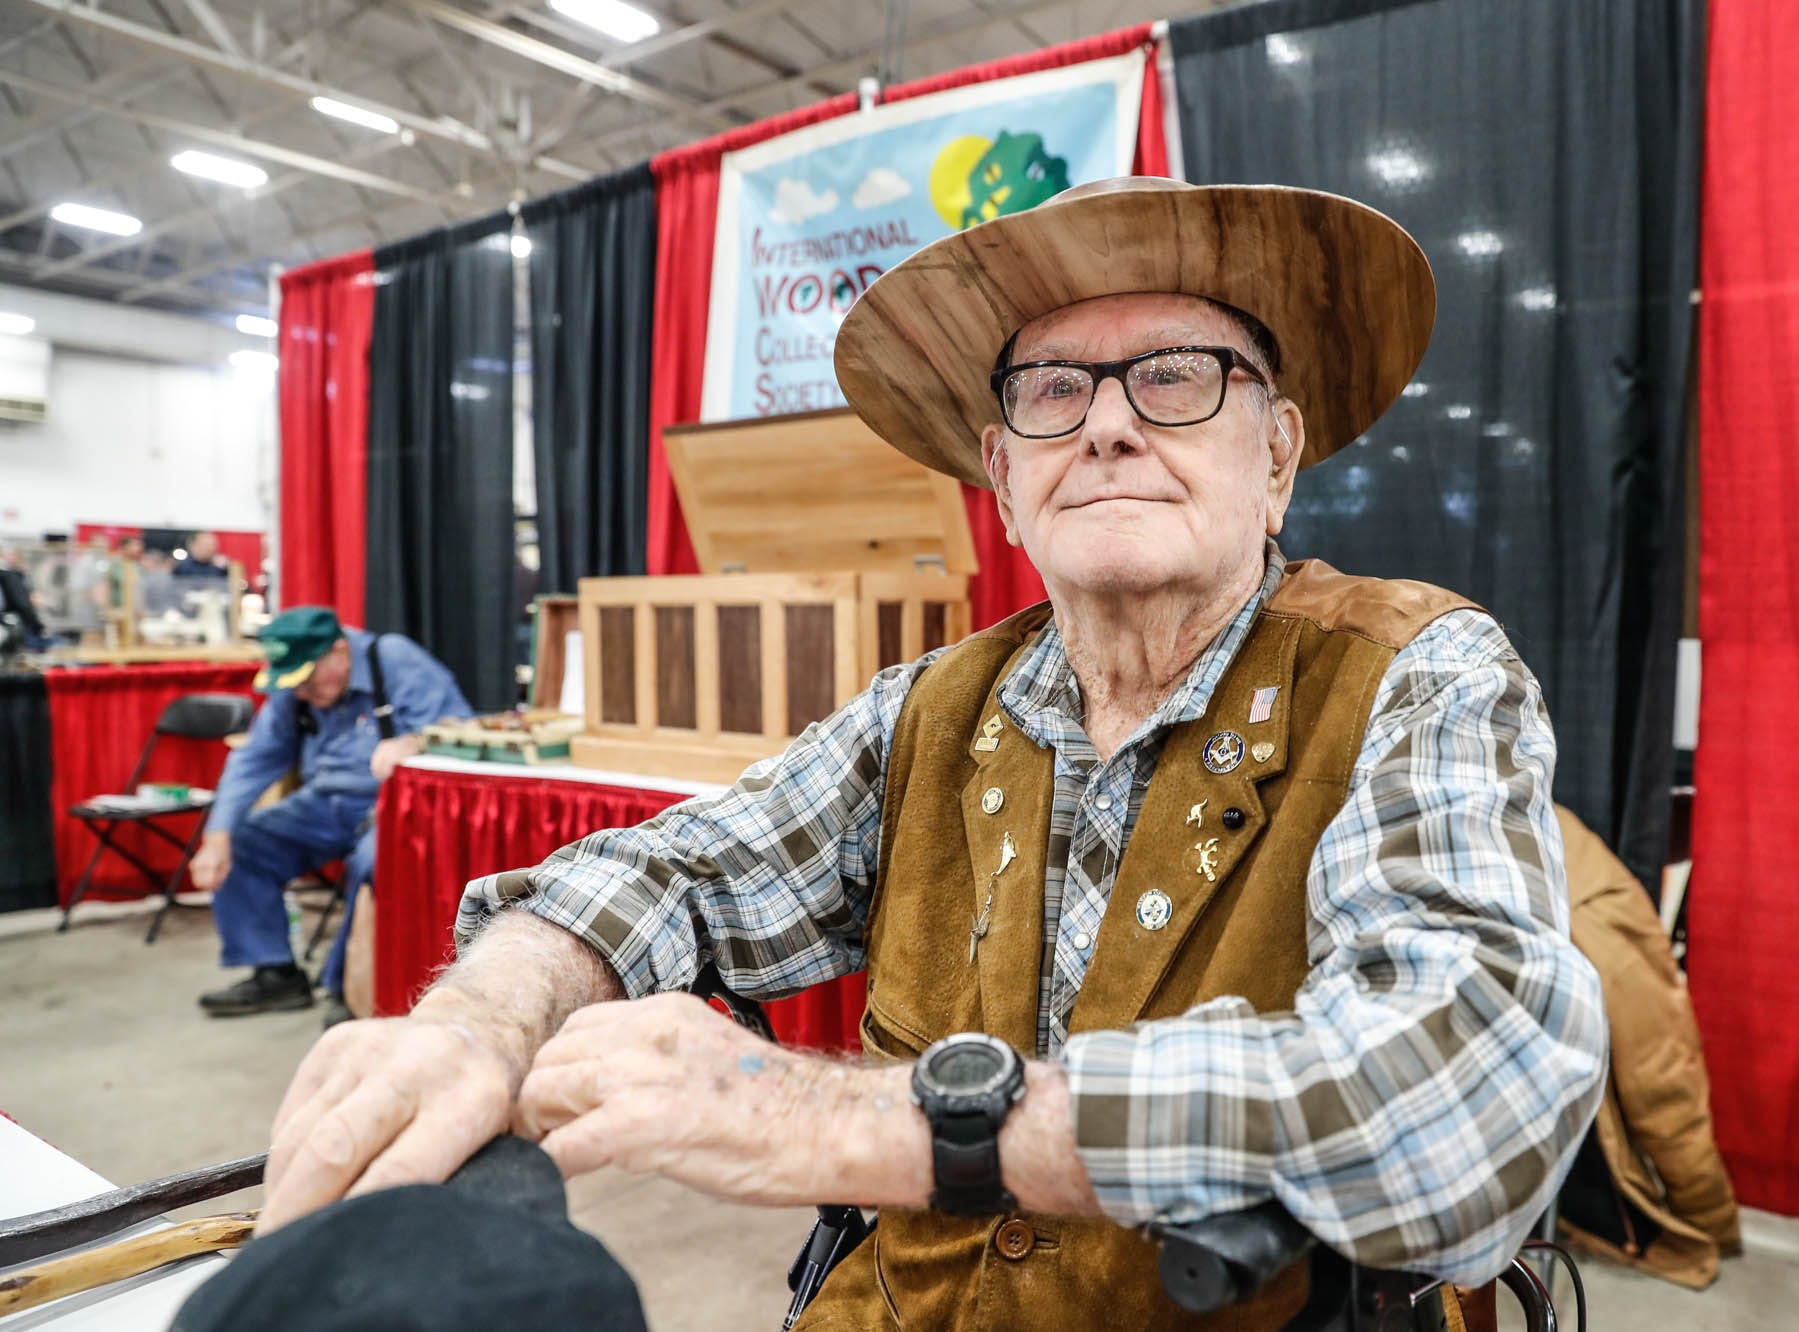 Bill Perkins, age 91, shows off the wooden hat he carved at the International Wood Collectors Society booth during a Wood Working Show at the Indiana State Fairgrounds in Indianapolis on Sunday, Feb. 3, 2019.